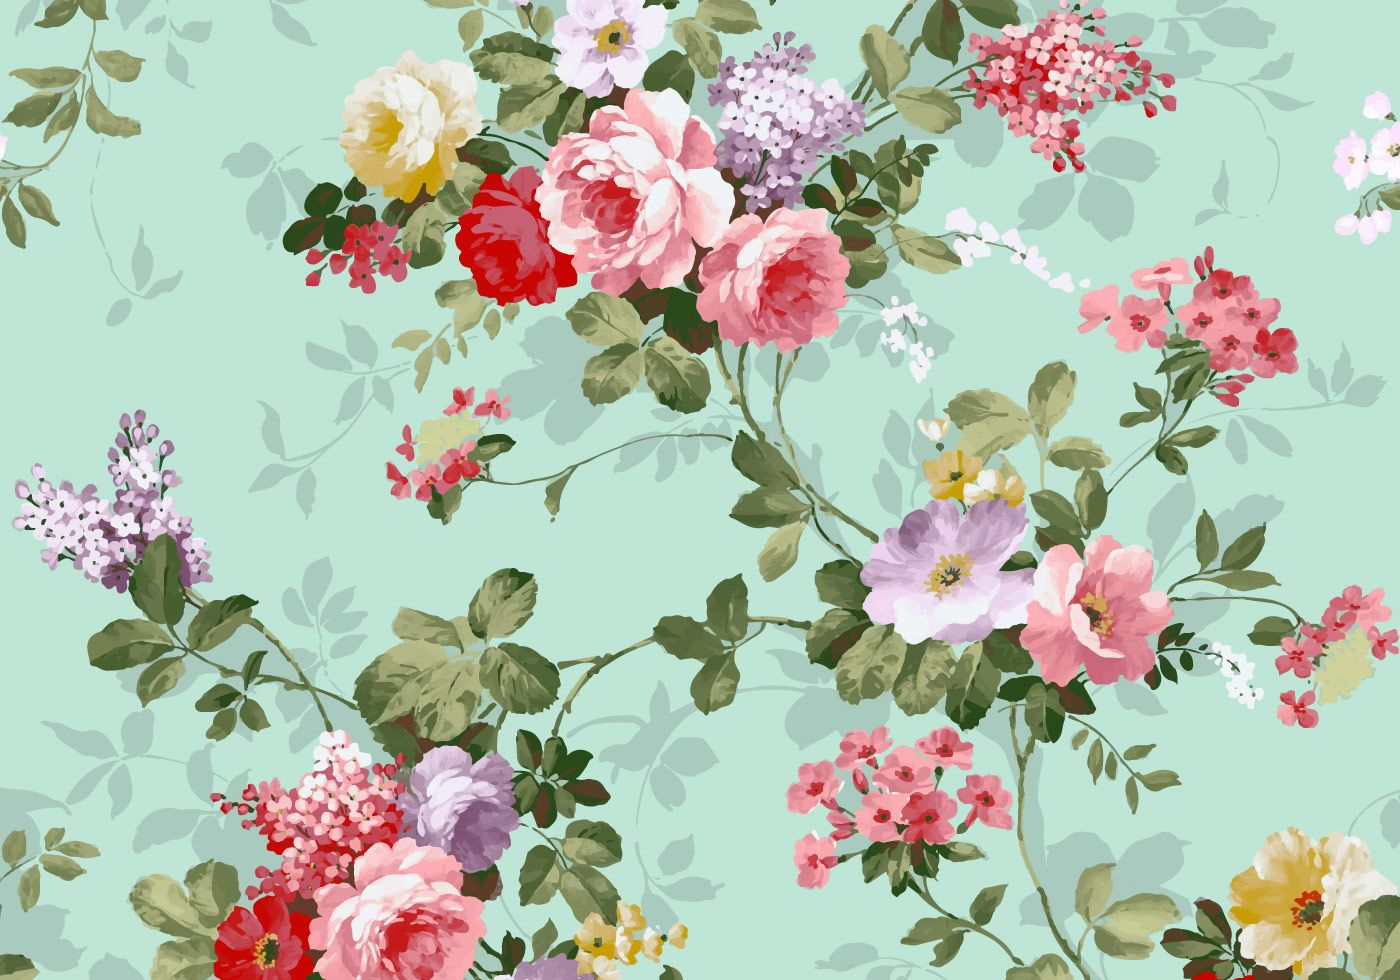 Beautiful Vintage Pink And Red Roses Textile Vector Background Free Wallpaper Bunga Bunga Vintage Wallpaper Vintage